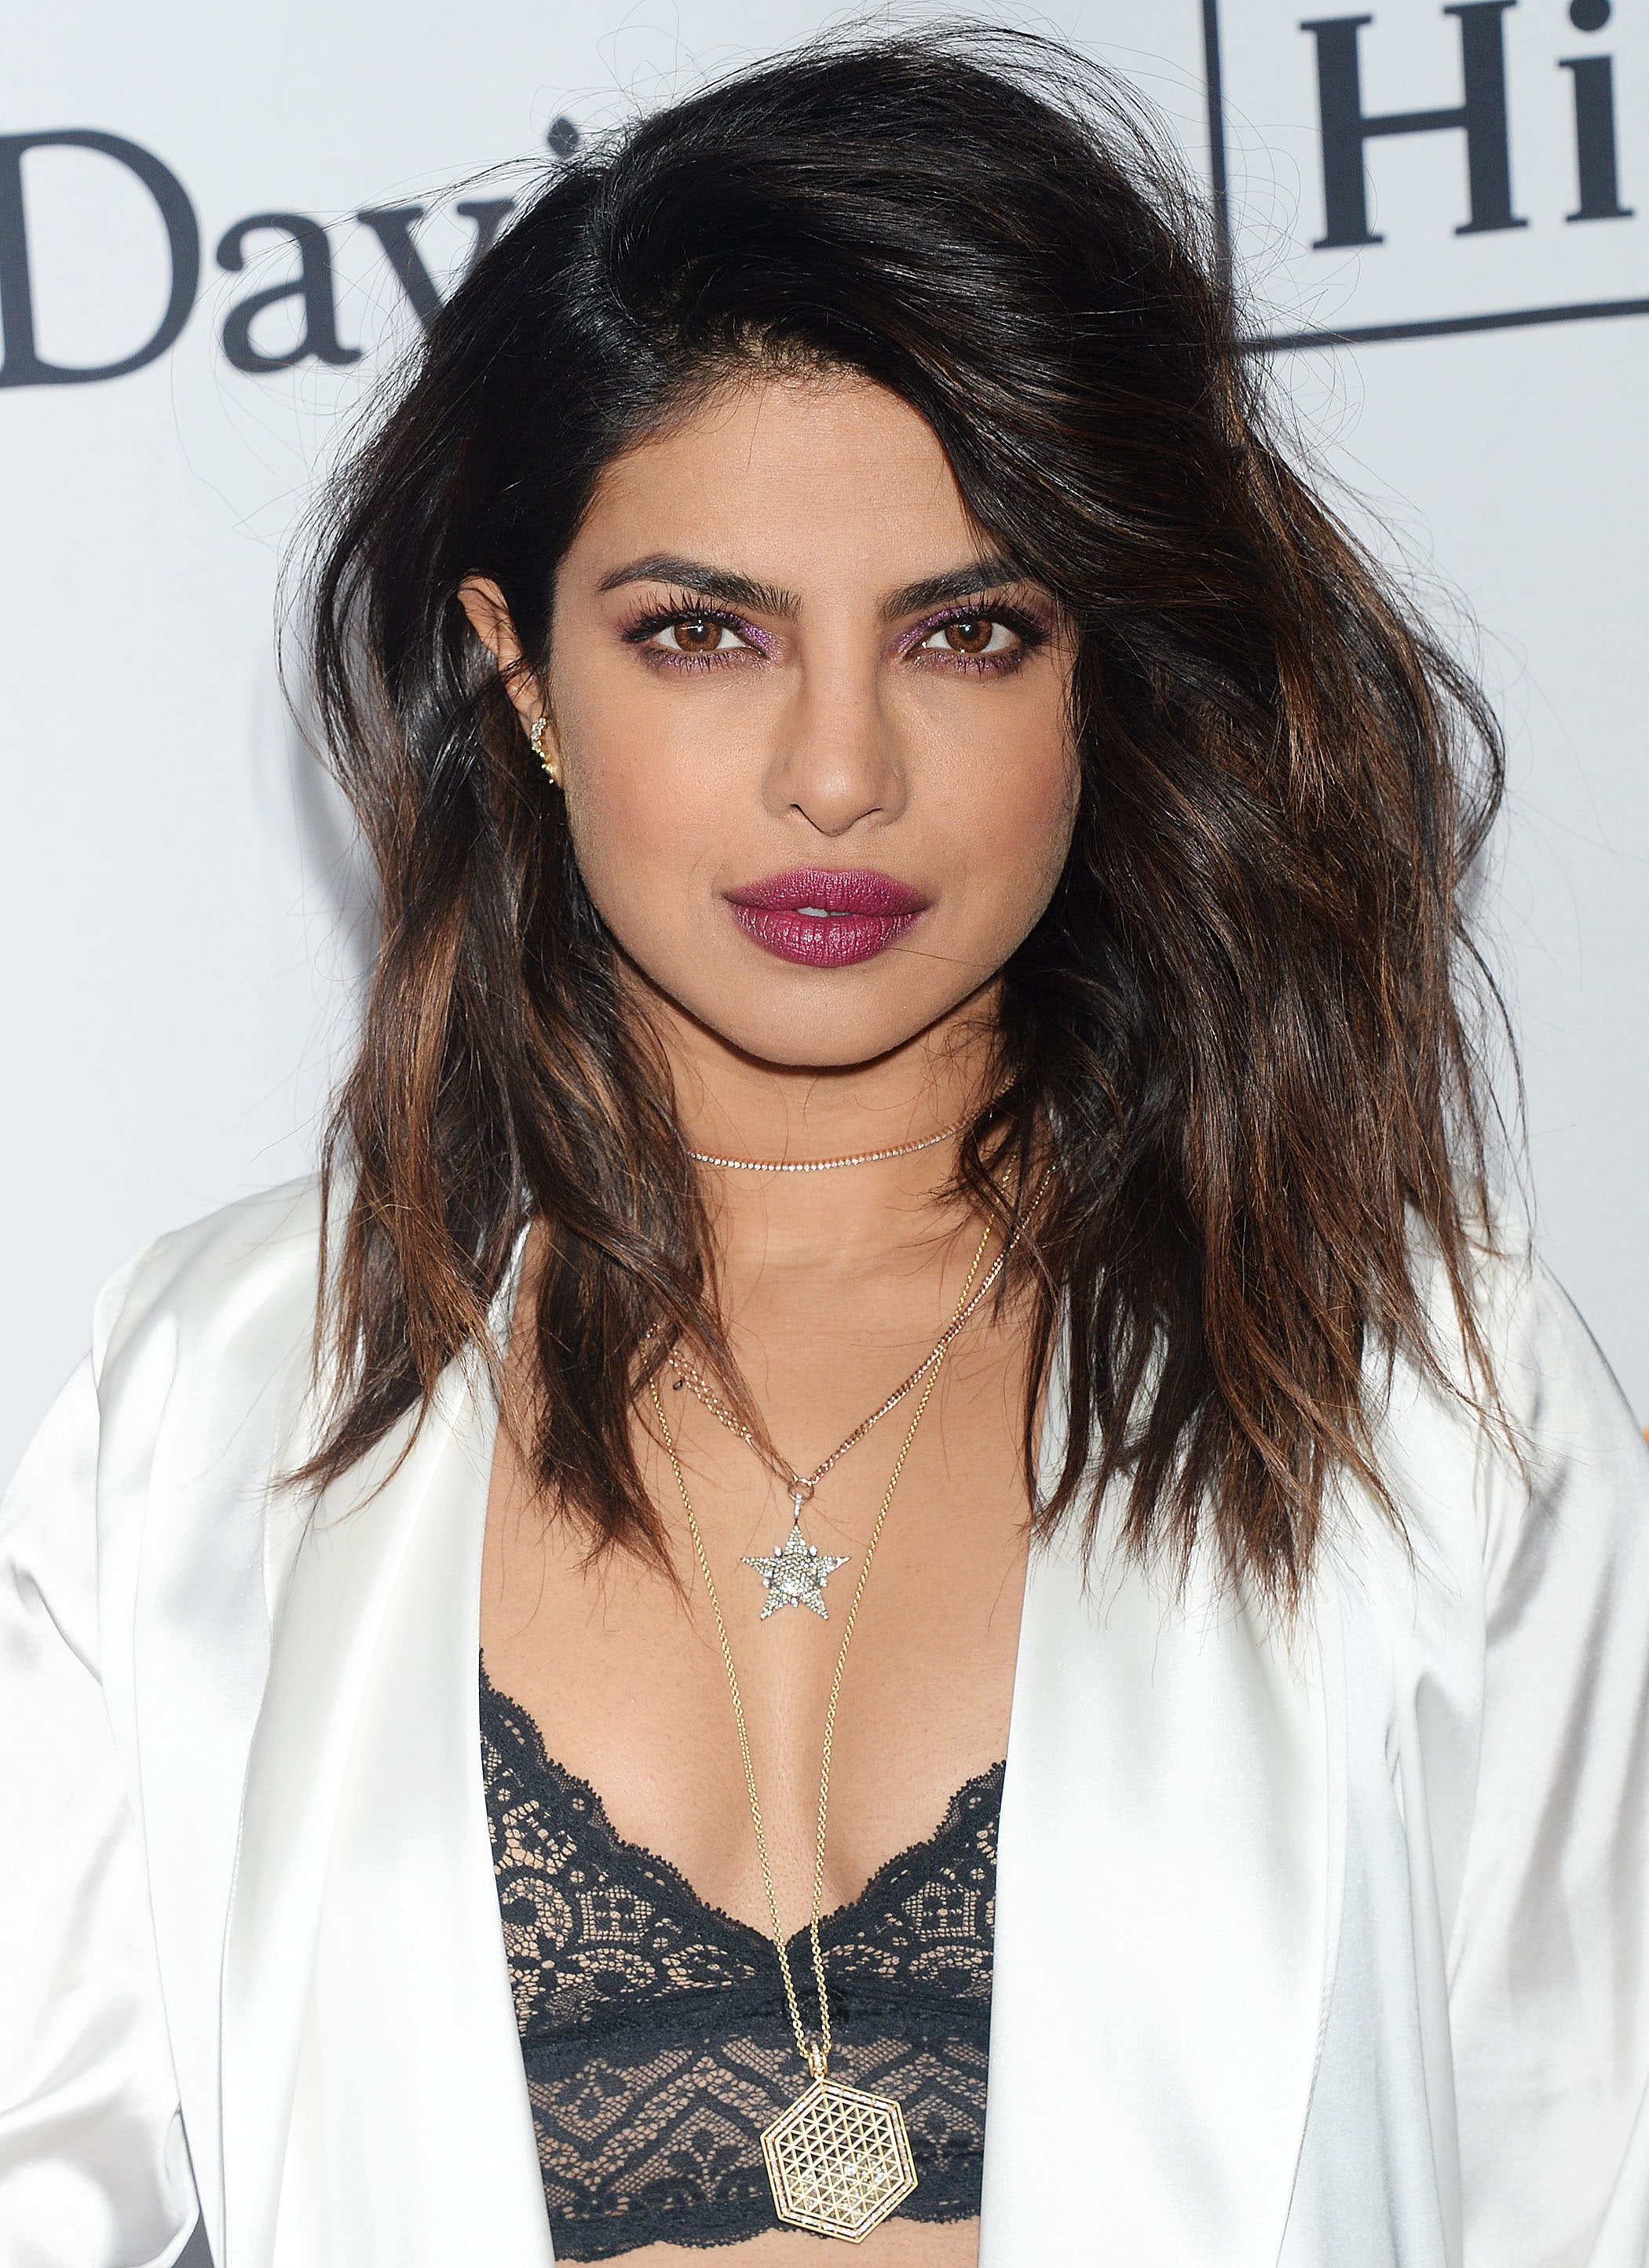 Shoulder length layered hair: Priyanka Chopra with mid-length brunette hair with highlights and layers, styled in a side parting